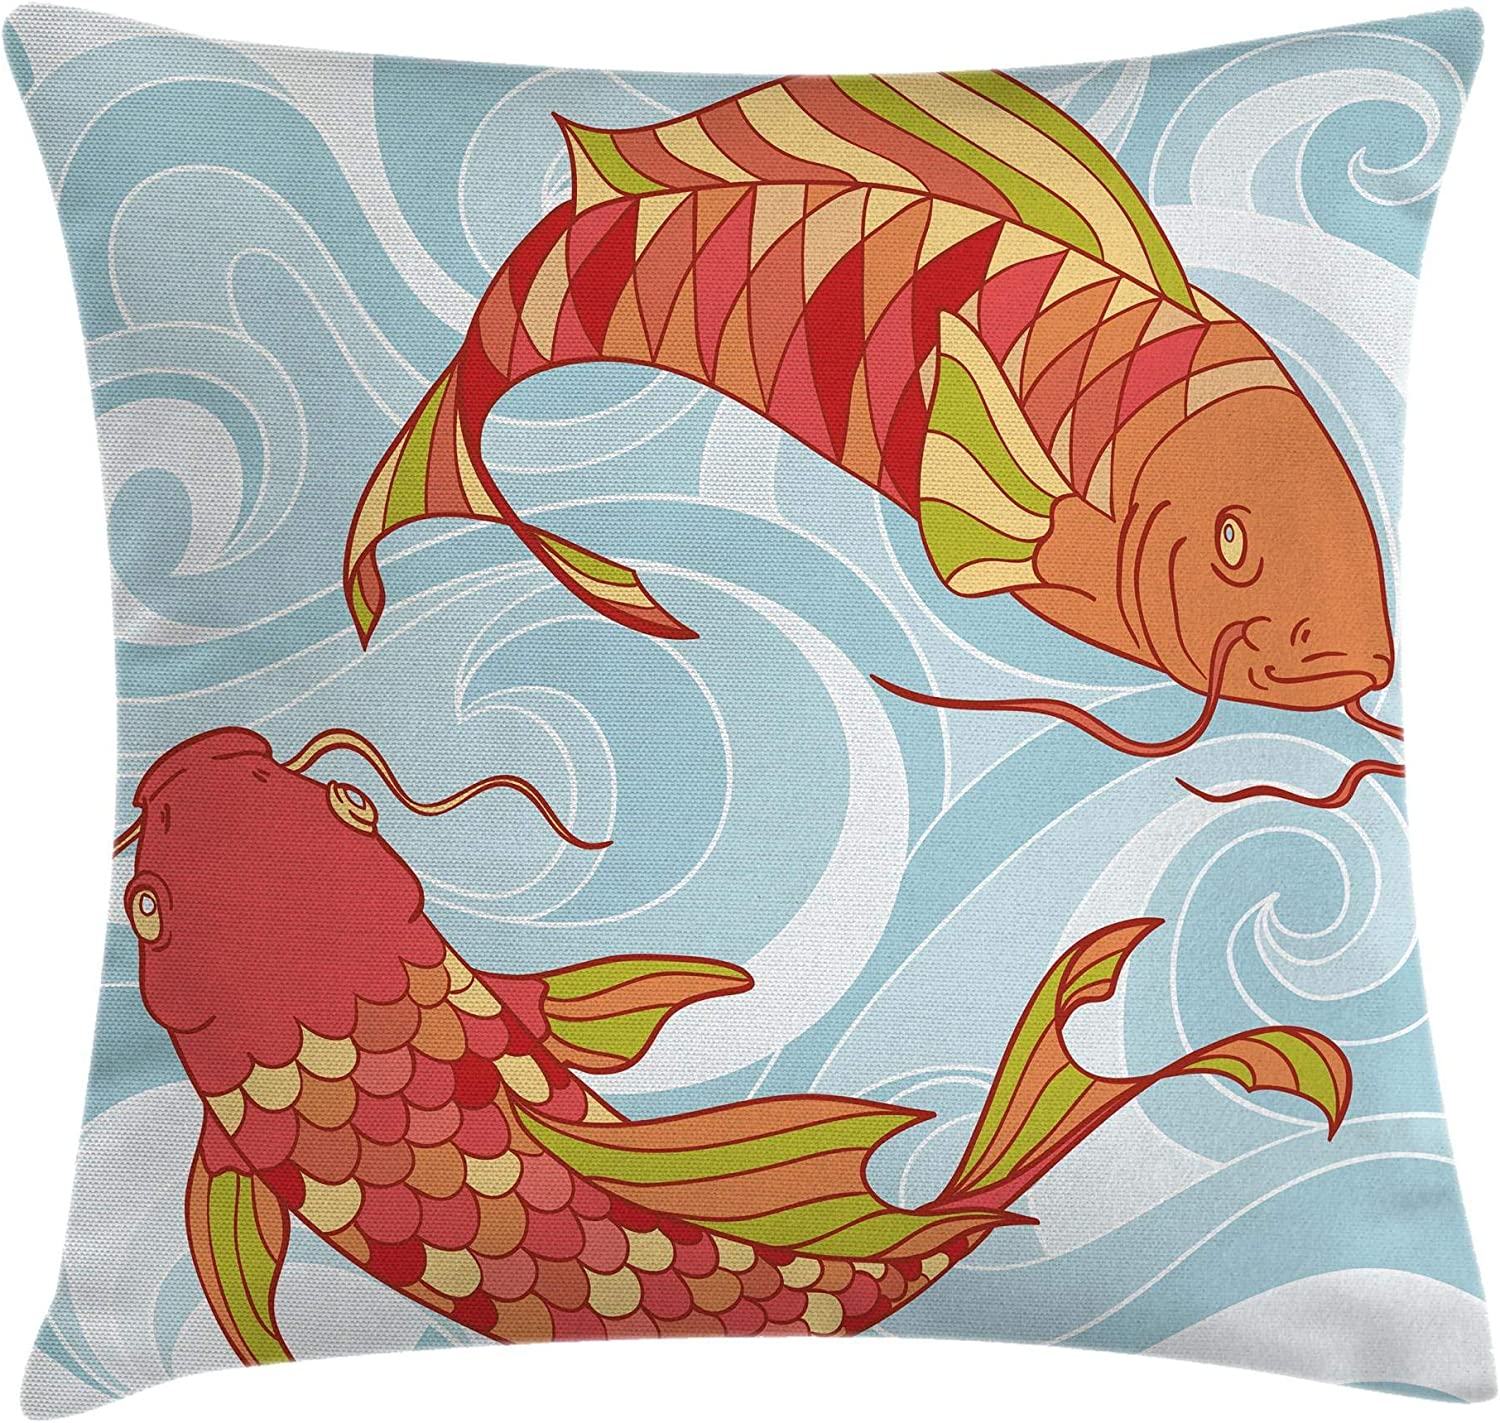 Amazon Com Ambesonne Koi Fish Throw Pillow Cushion Cover Hand Drawn Colorful Koi And Swirled Sea Waves Japanese Oriental Art Design Decorative Square Accent Pillow Case 18 X 18 Orange Blue Home